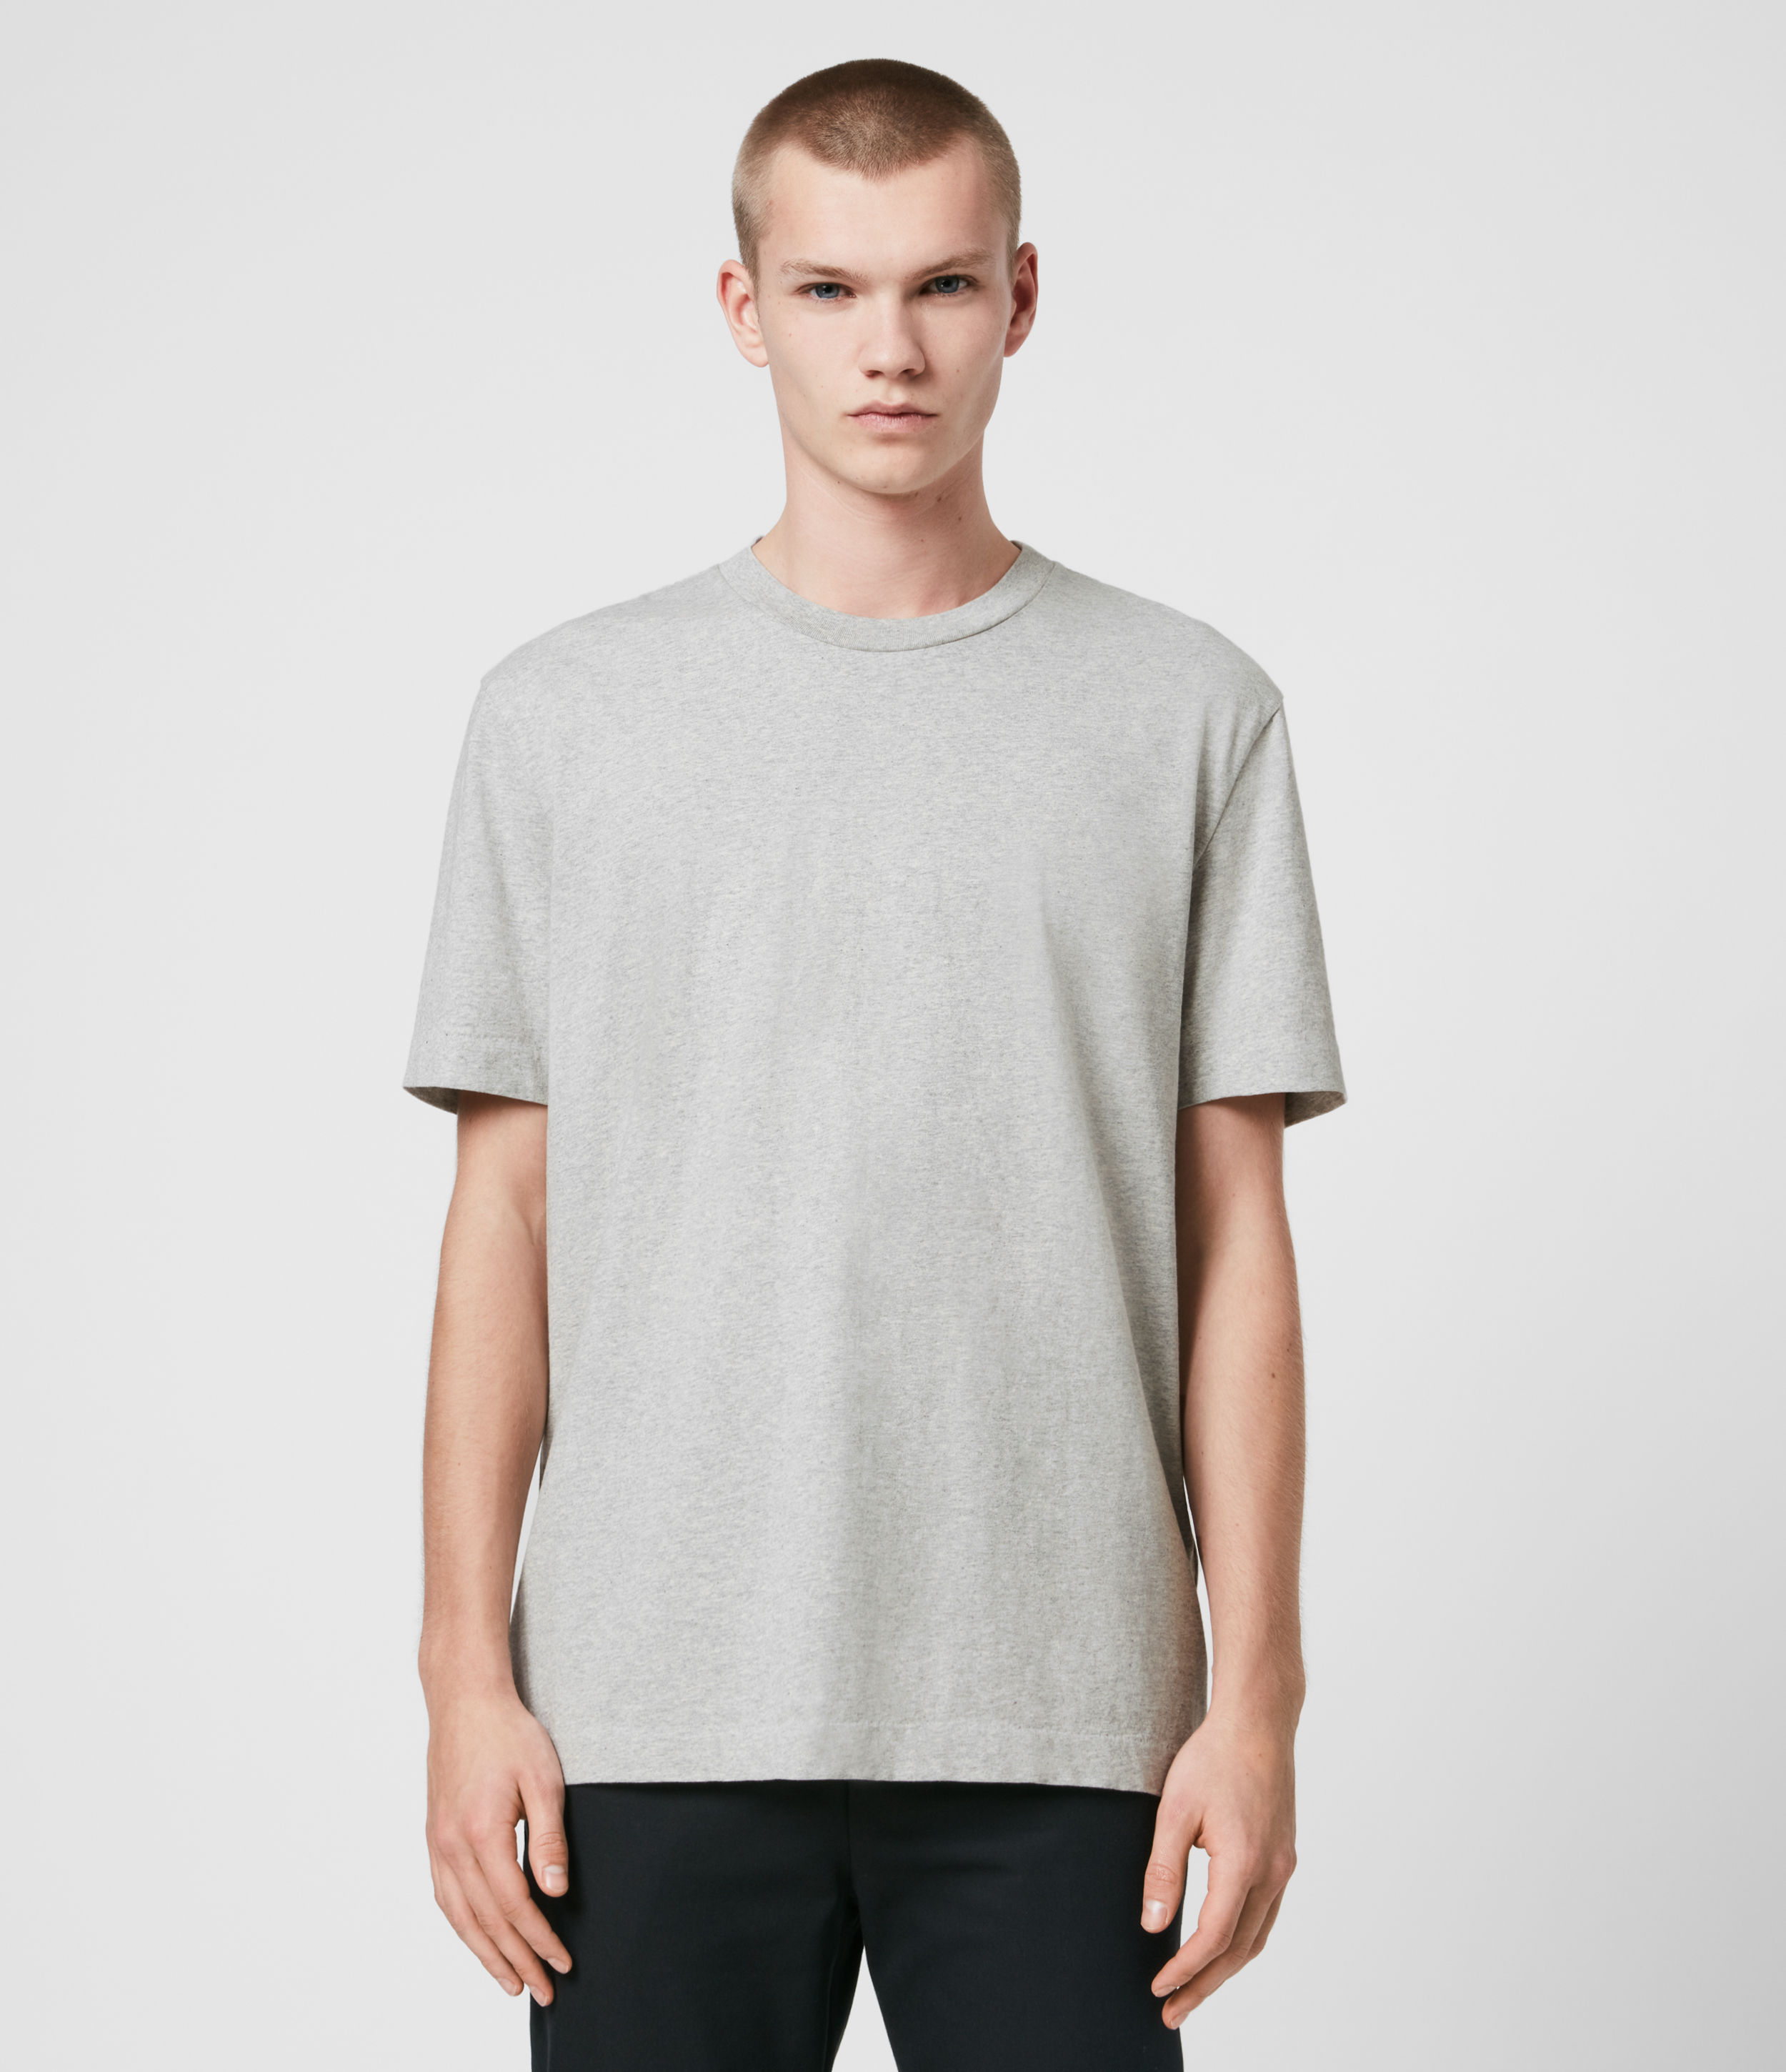 AllSaints Men's Cotton Relaxed Fit Musica Crew T-shirt, Grey, Size: XS